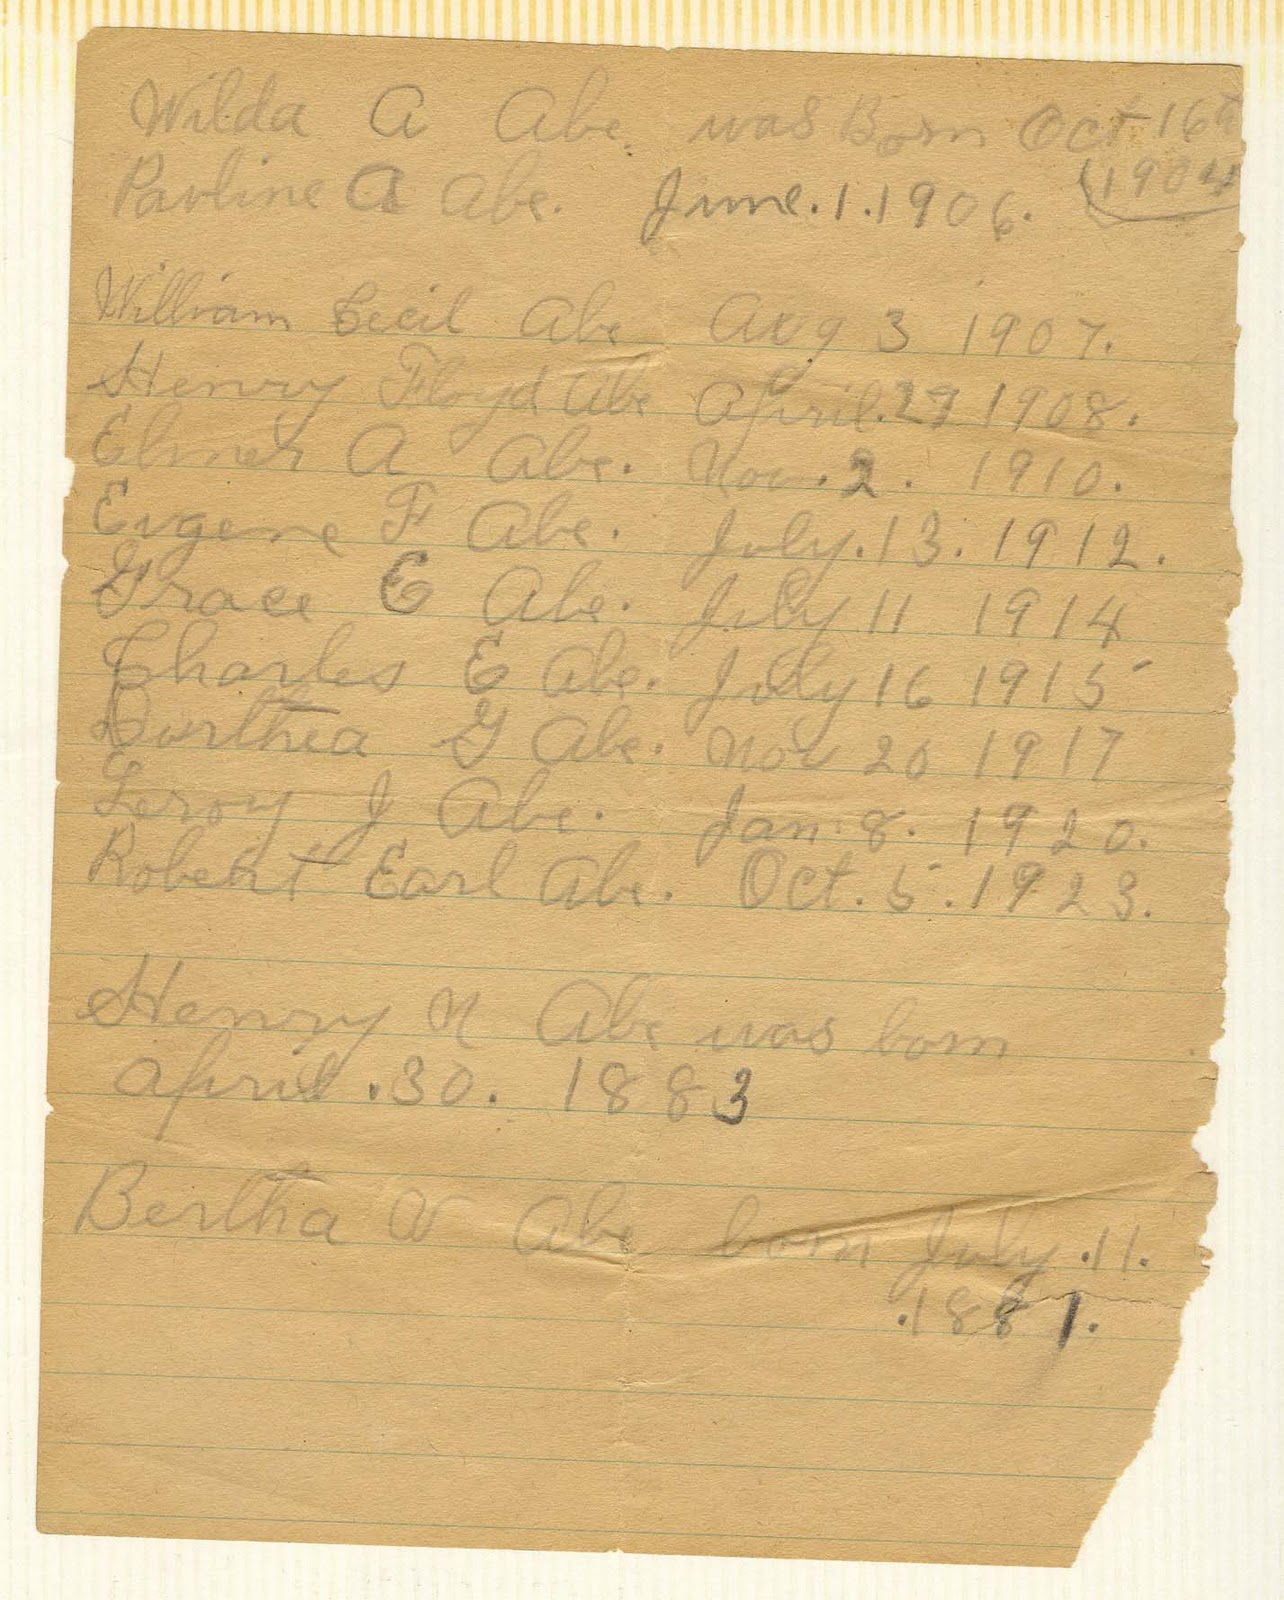 Abe Family Heritage Records: October 2011